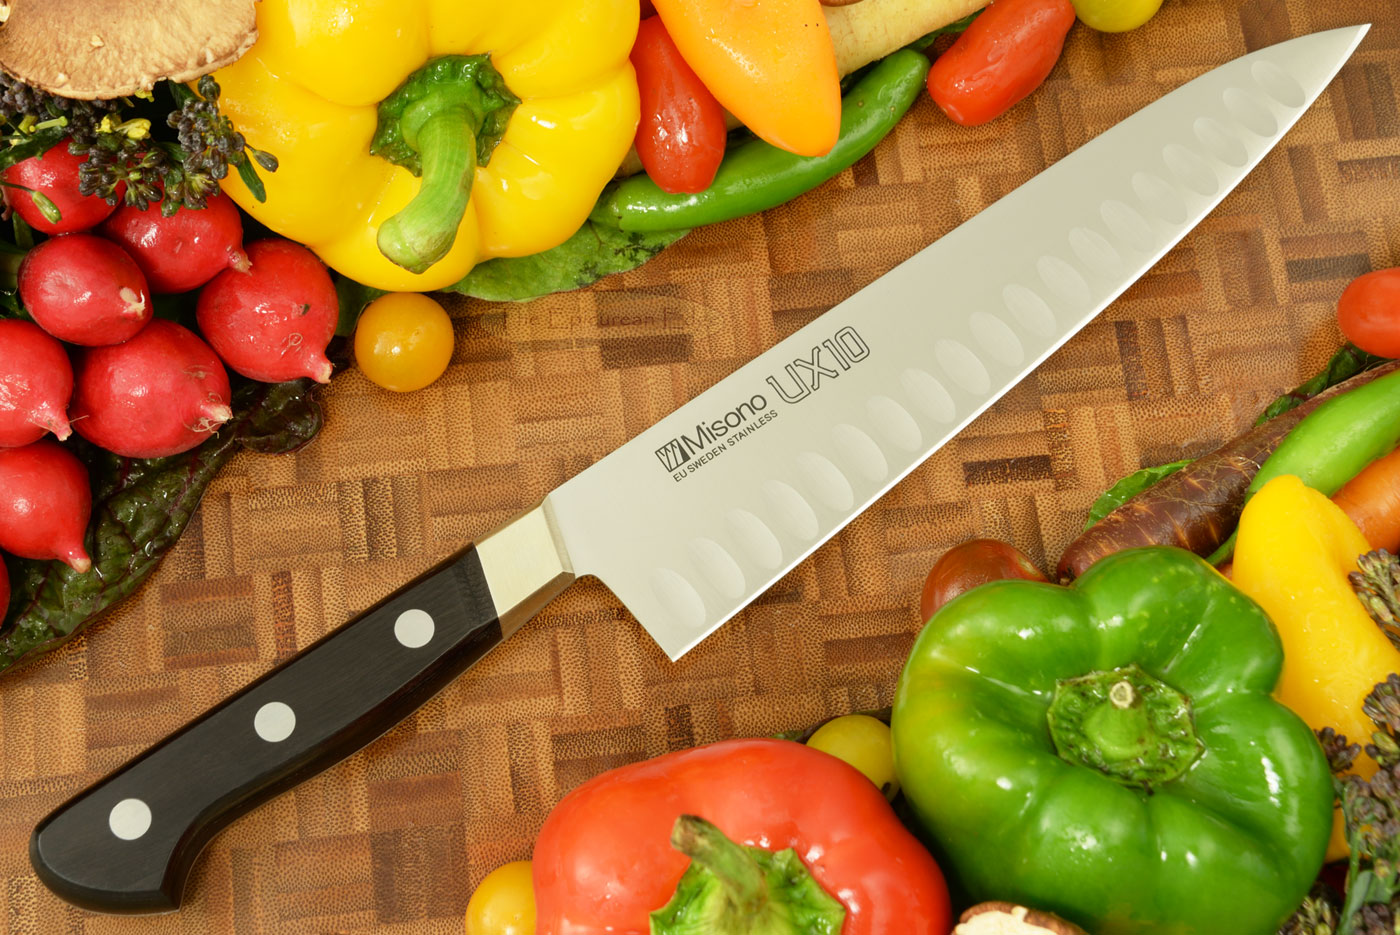 UX10 Chef's Knife - Gyuto, Granton Edge - 8 1/4 in. (210mm) - No. 762 by Misono